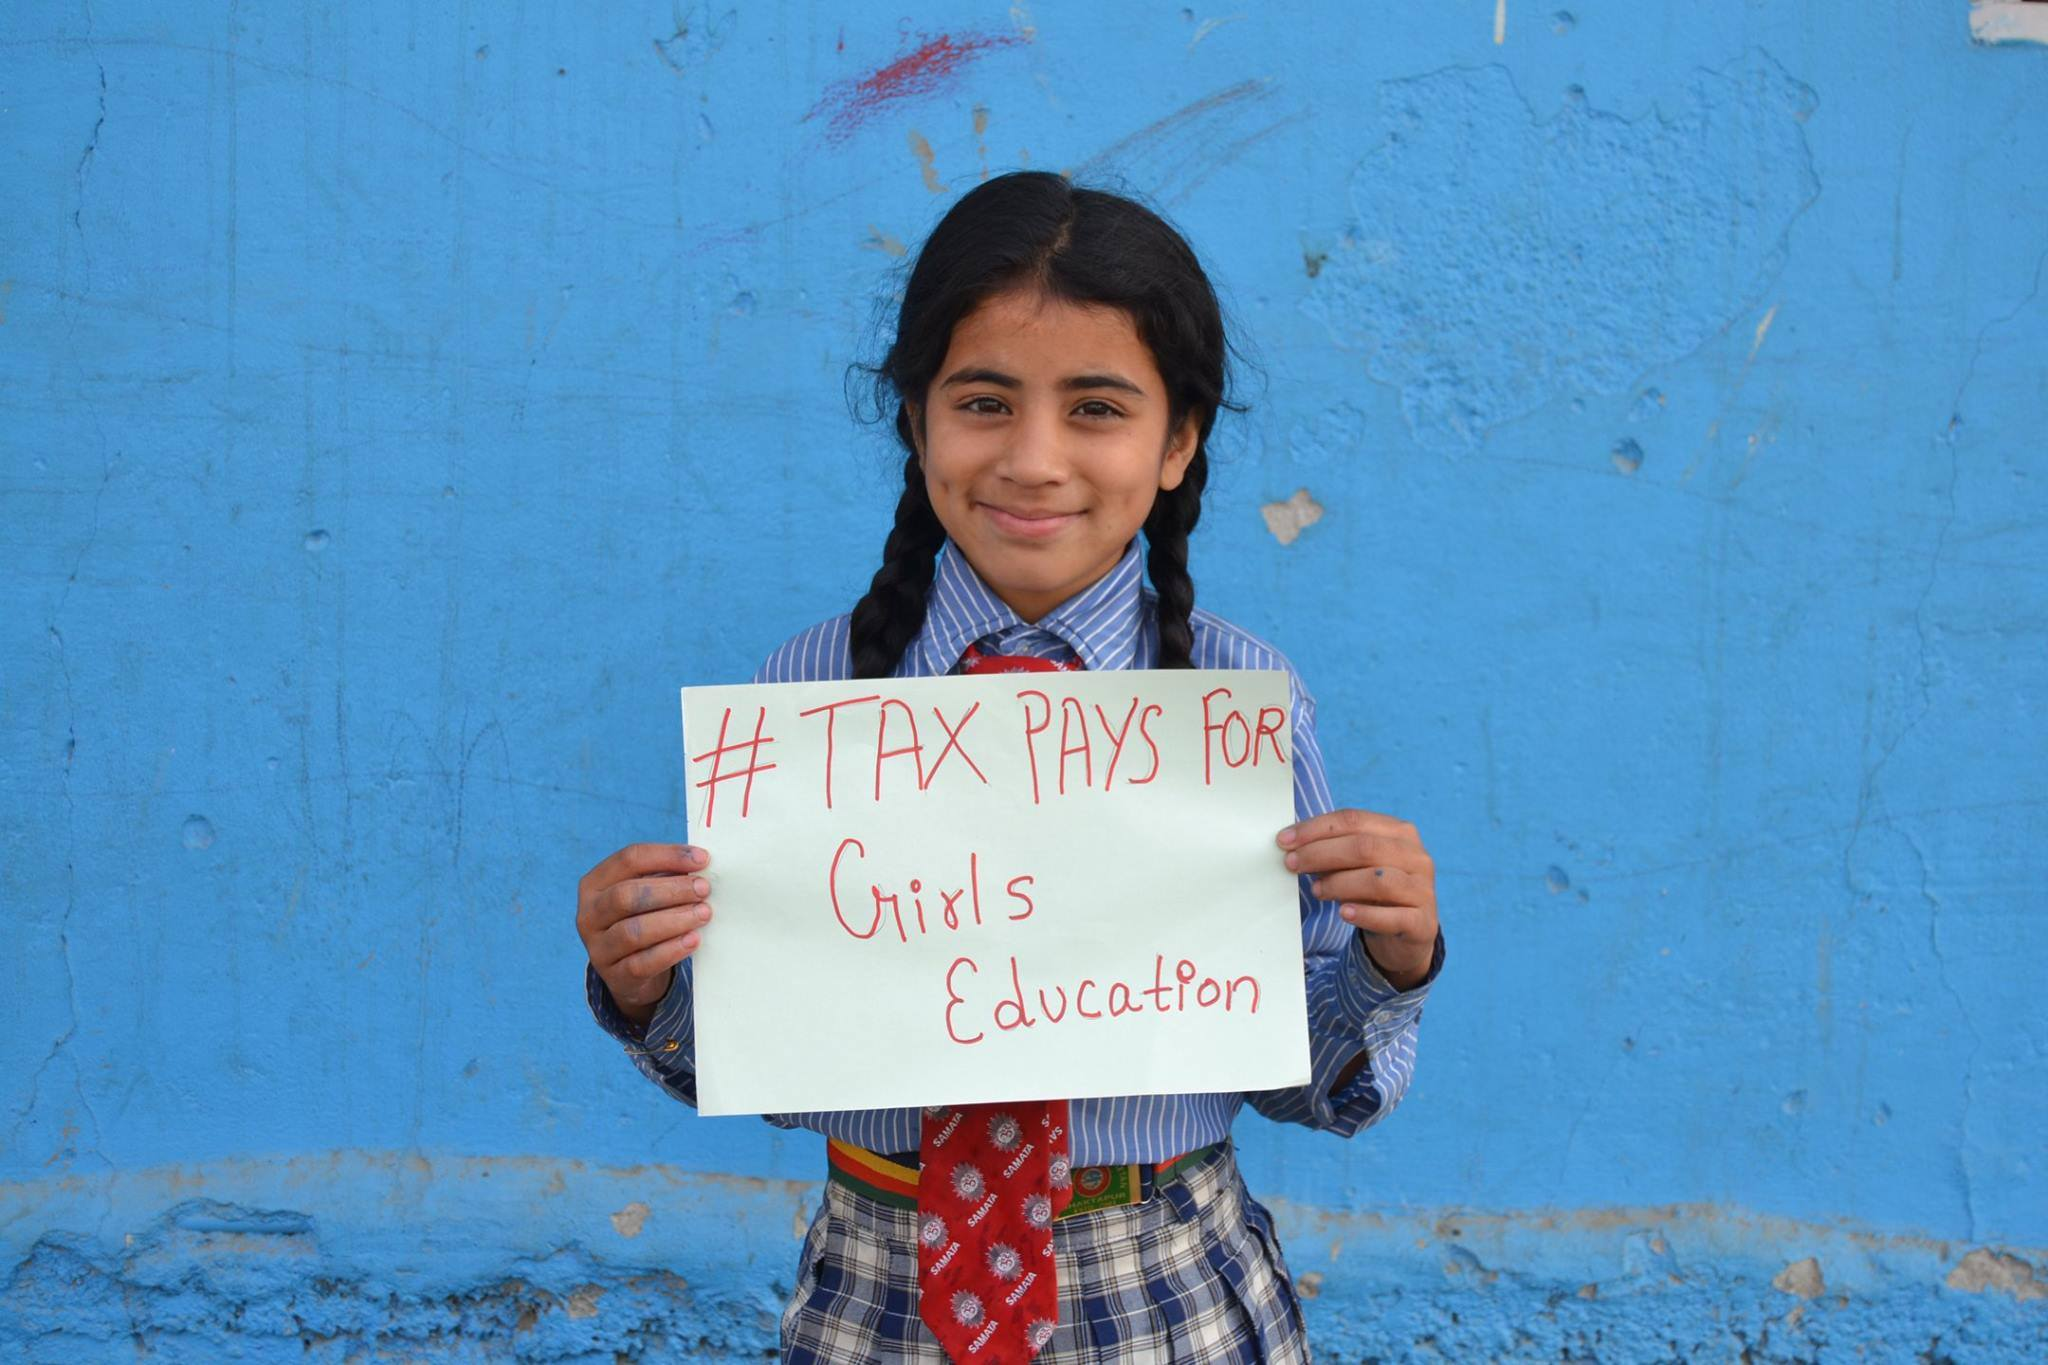 Tax pays for Girls Education